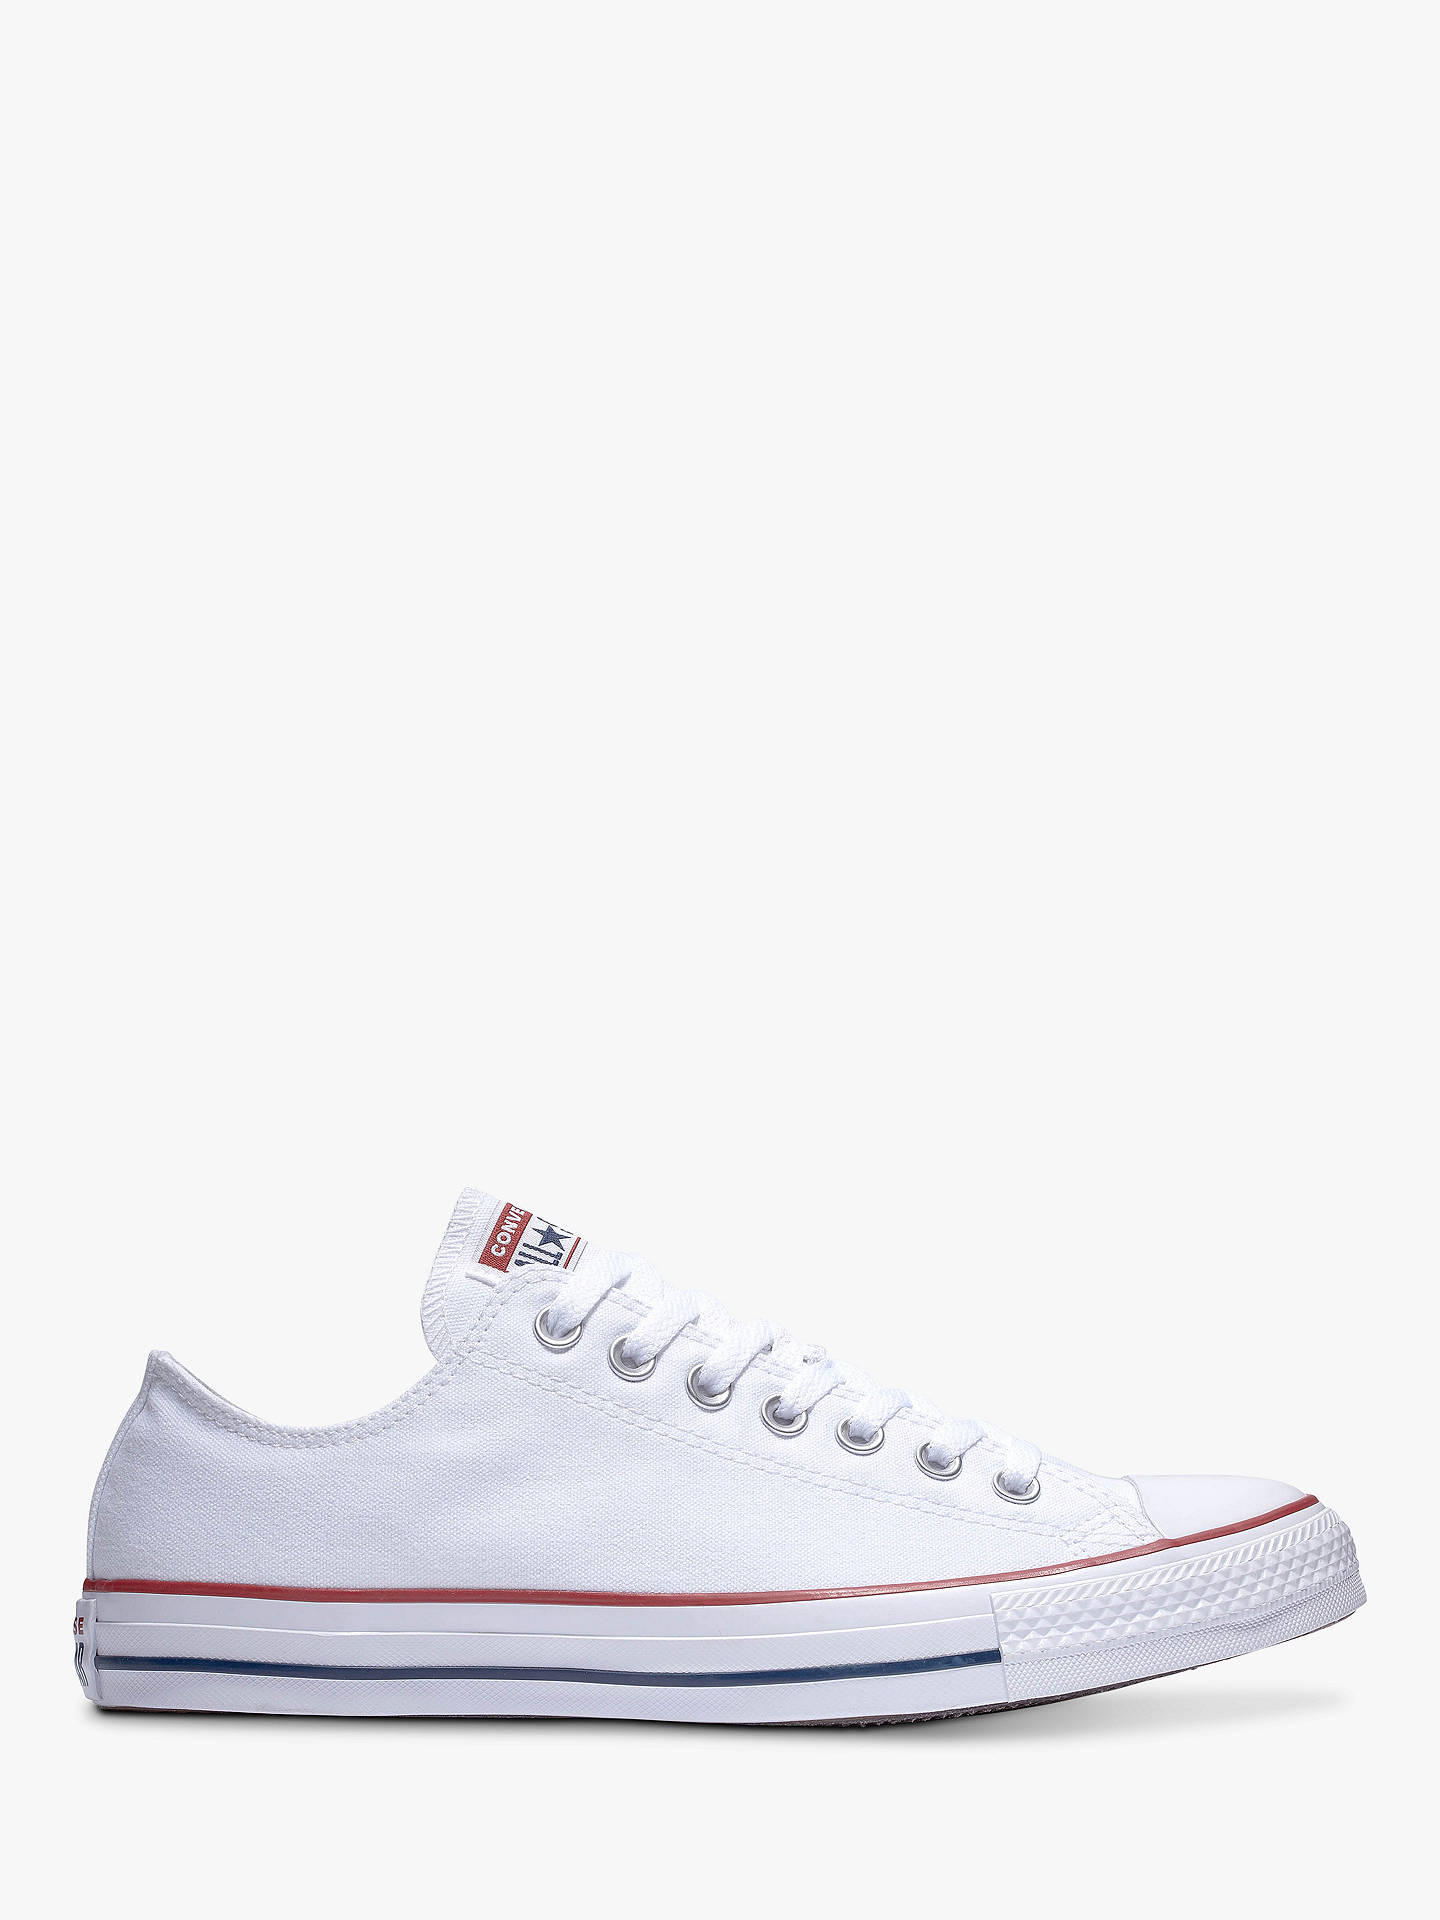 b2b6e21f9ebb Converse Chuck Taylor All Star Canvas Ox Low-Top Trainers at John ...